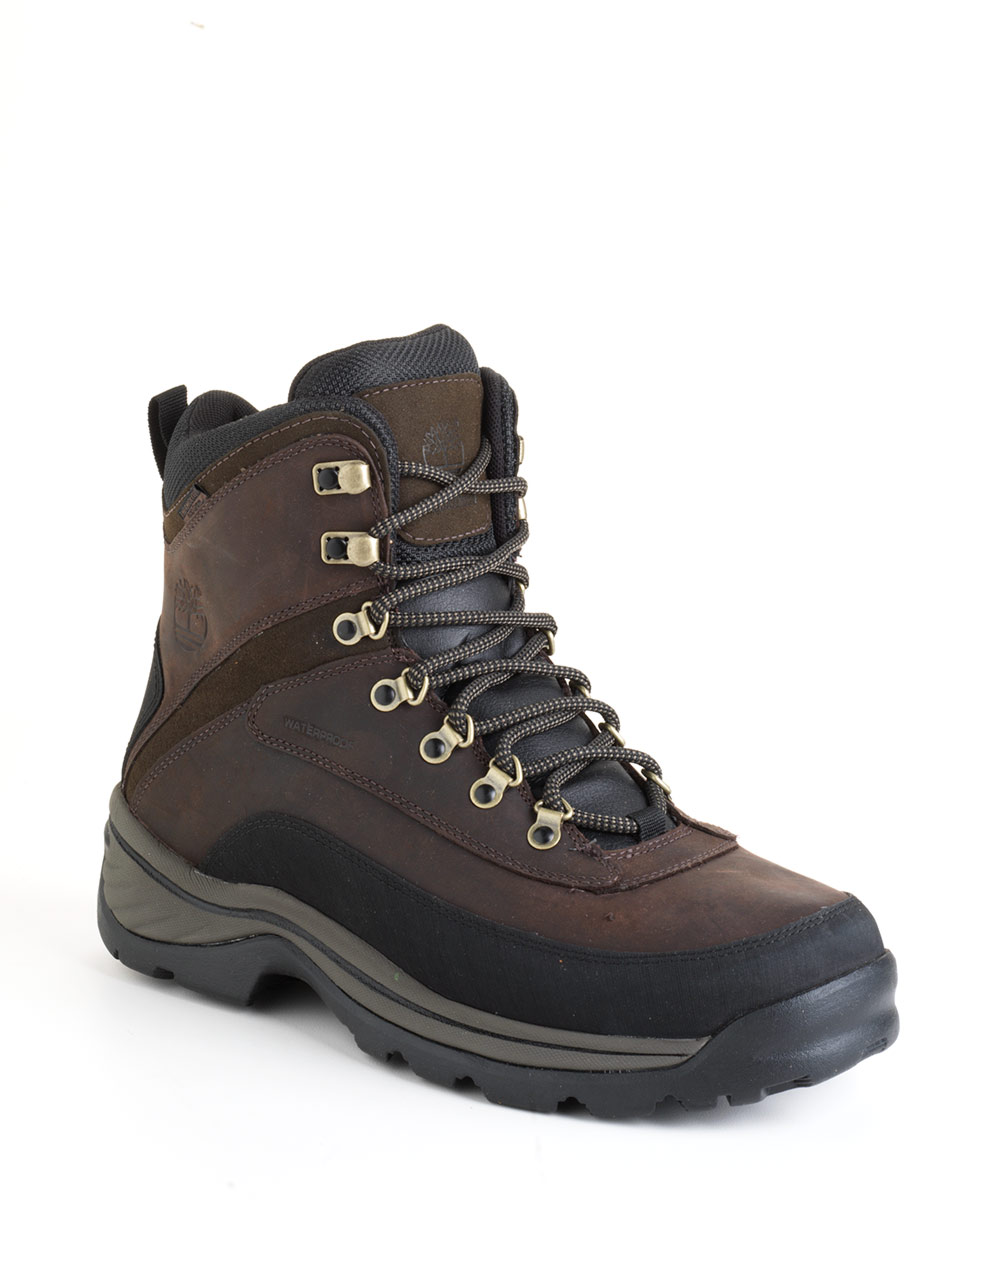 Timberland White Ledge Waterproof Mid Hiking Boots Image 1